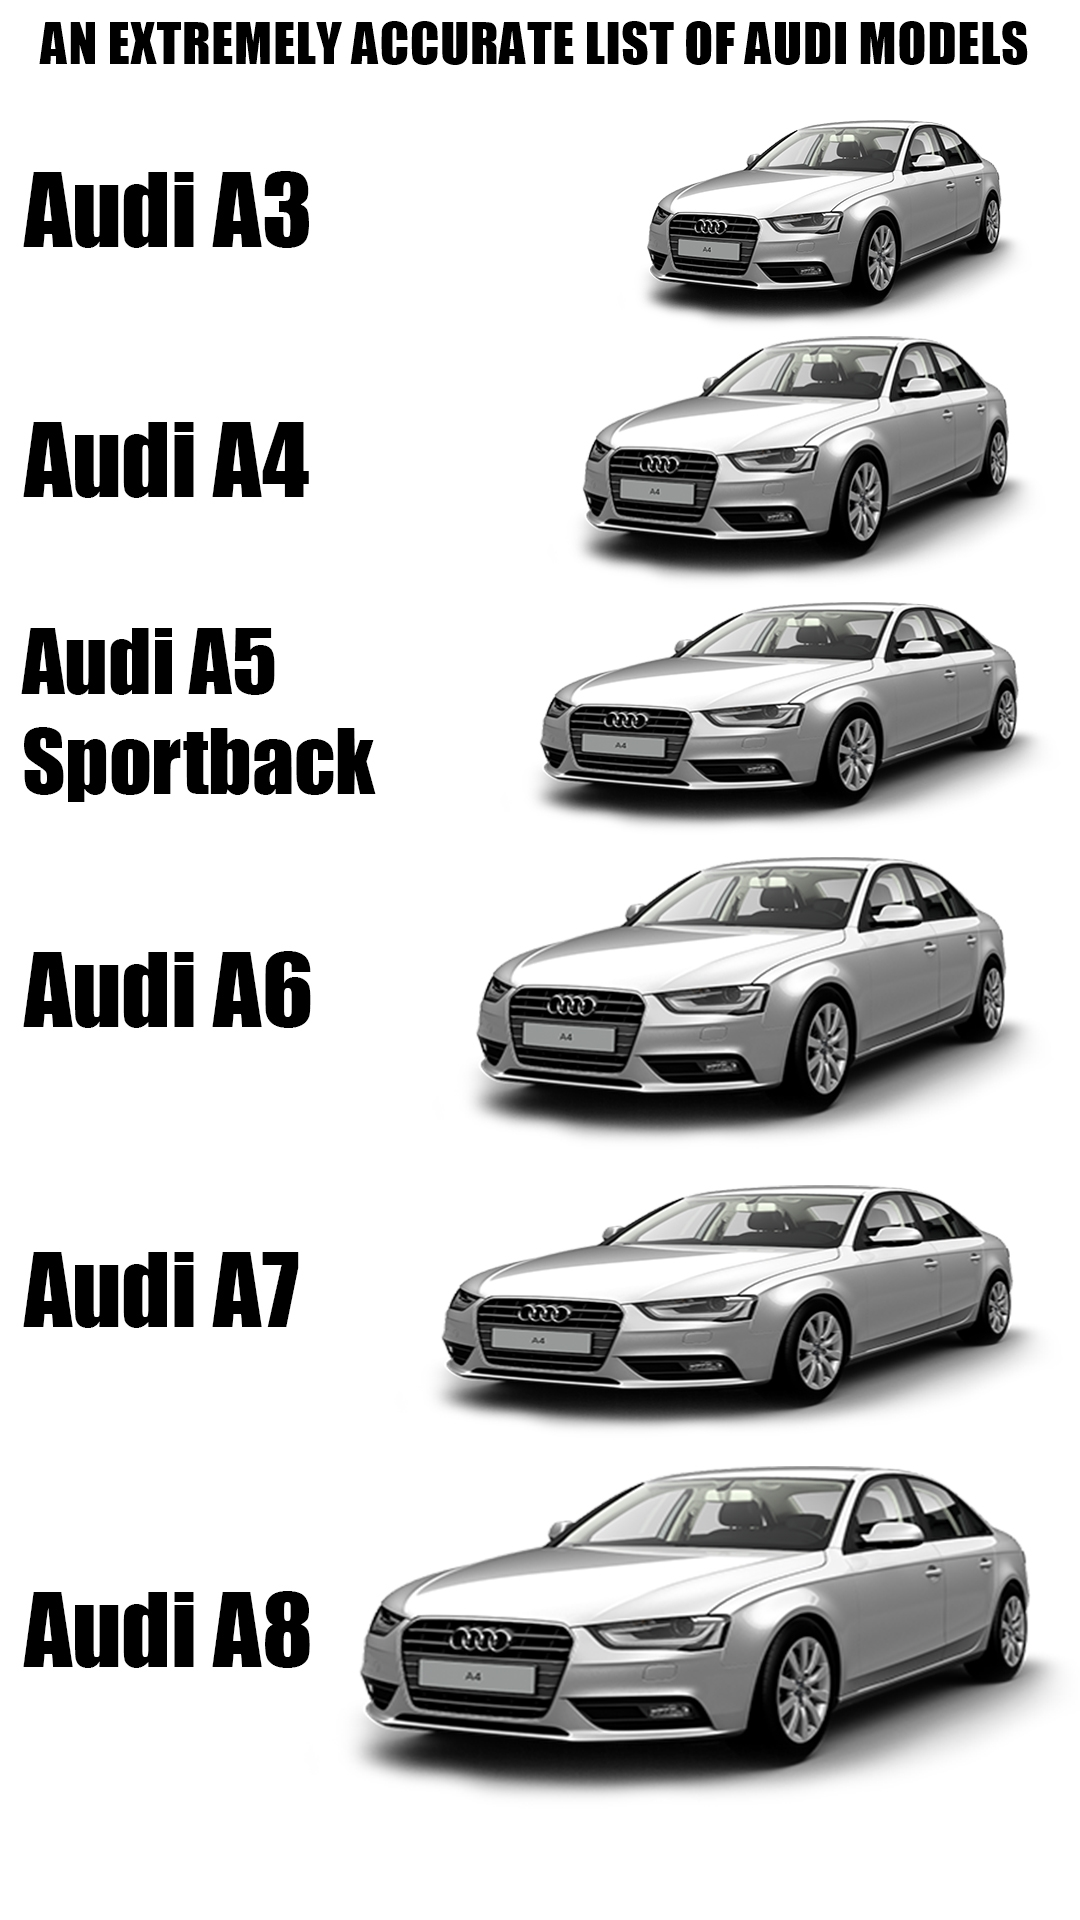 My Favourite Audi A4 Is The Audi A7